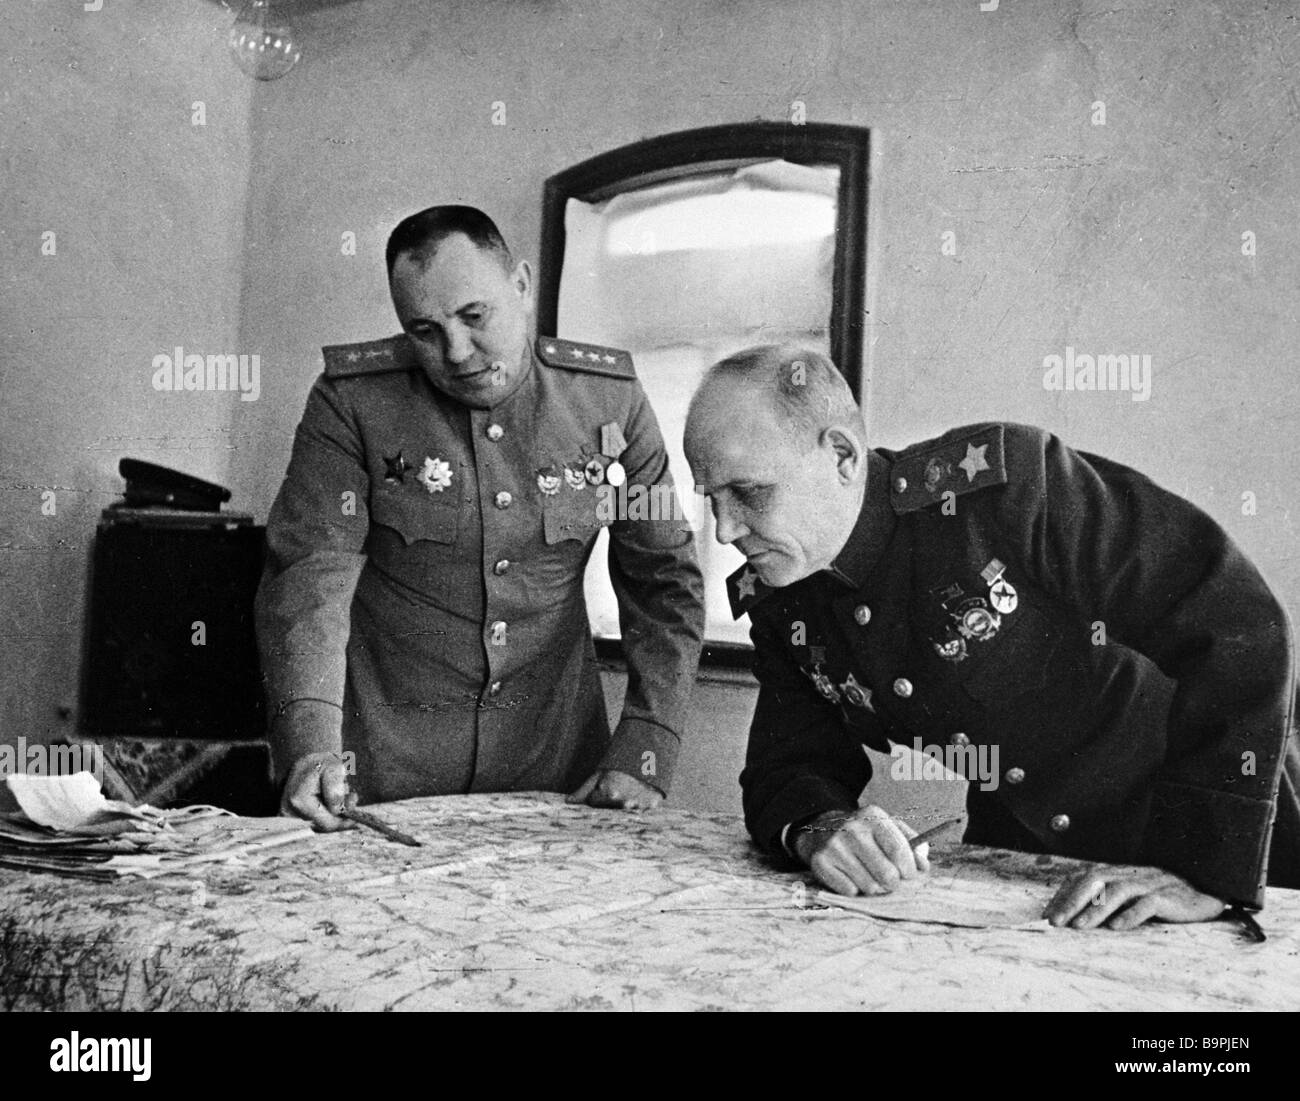 Colonel General Matvei Zakharov left the Second Ukrainian Front s chief of staff and Ivan Konev right commander - Stock Image